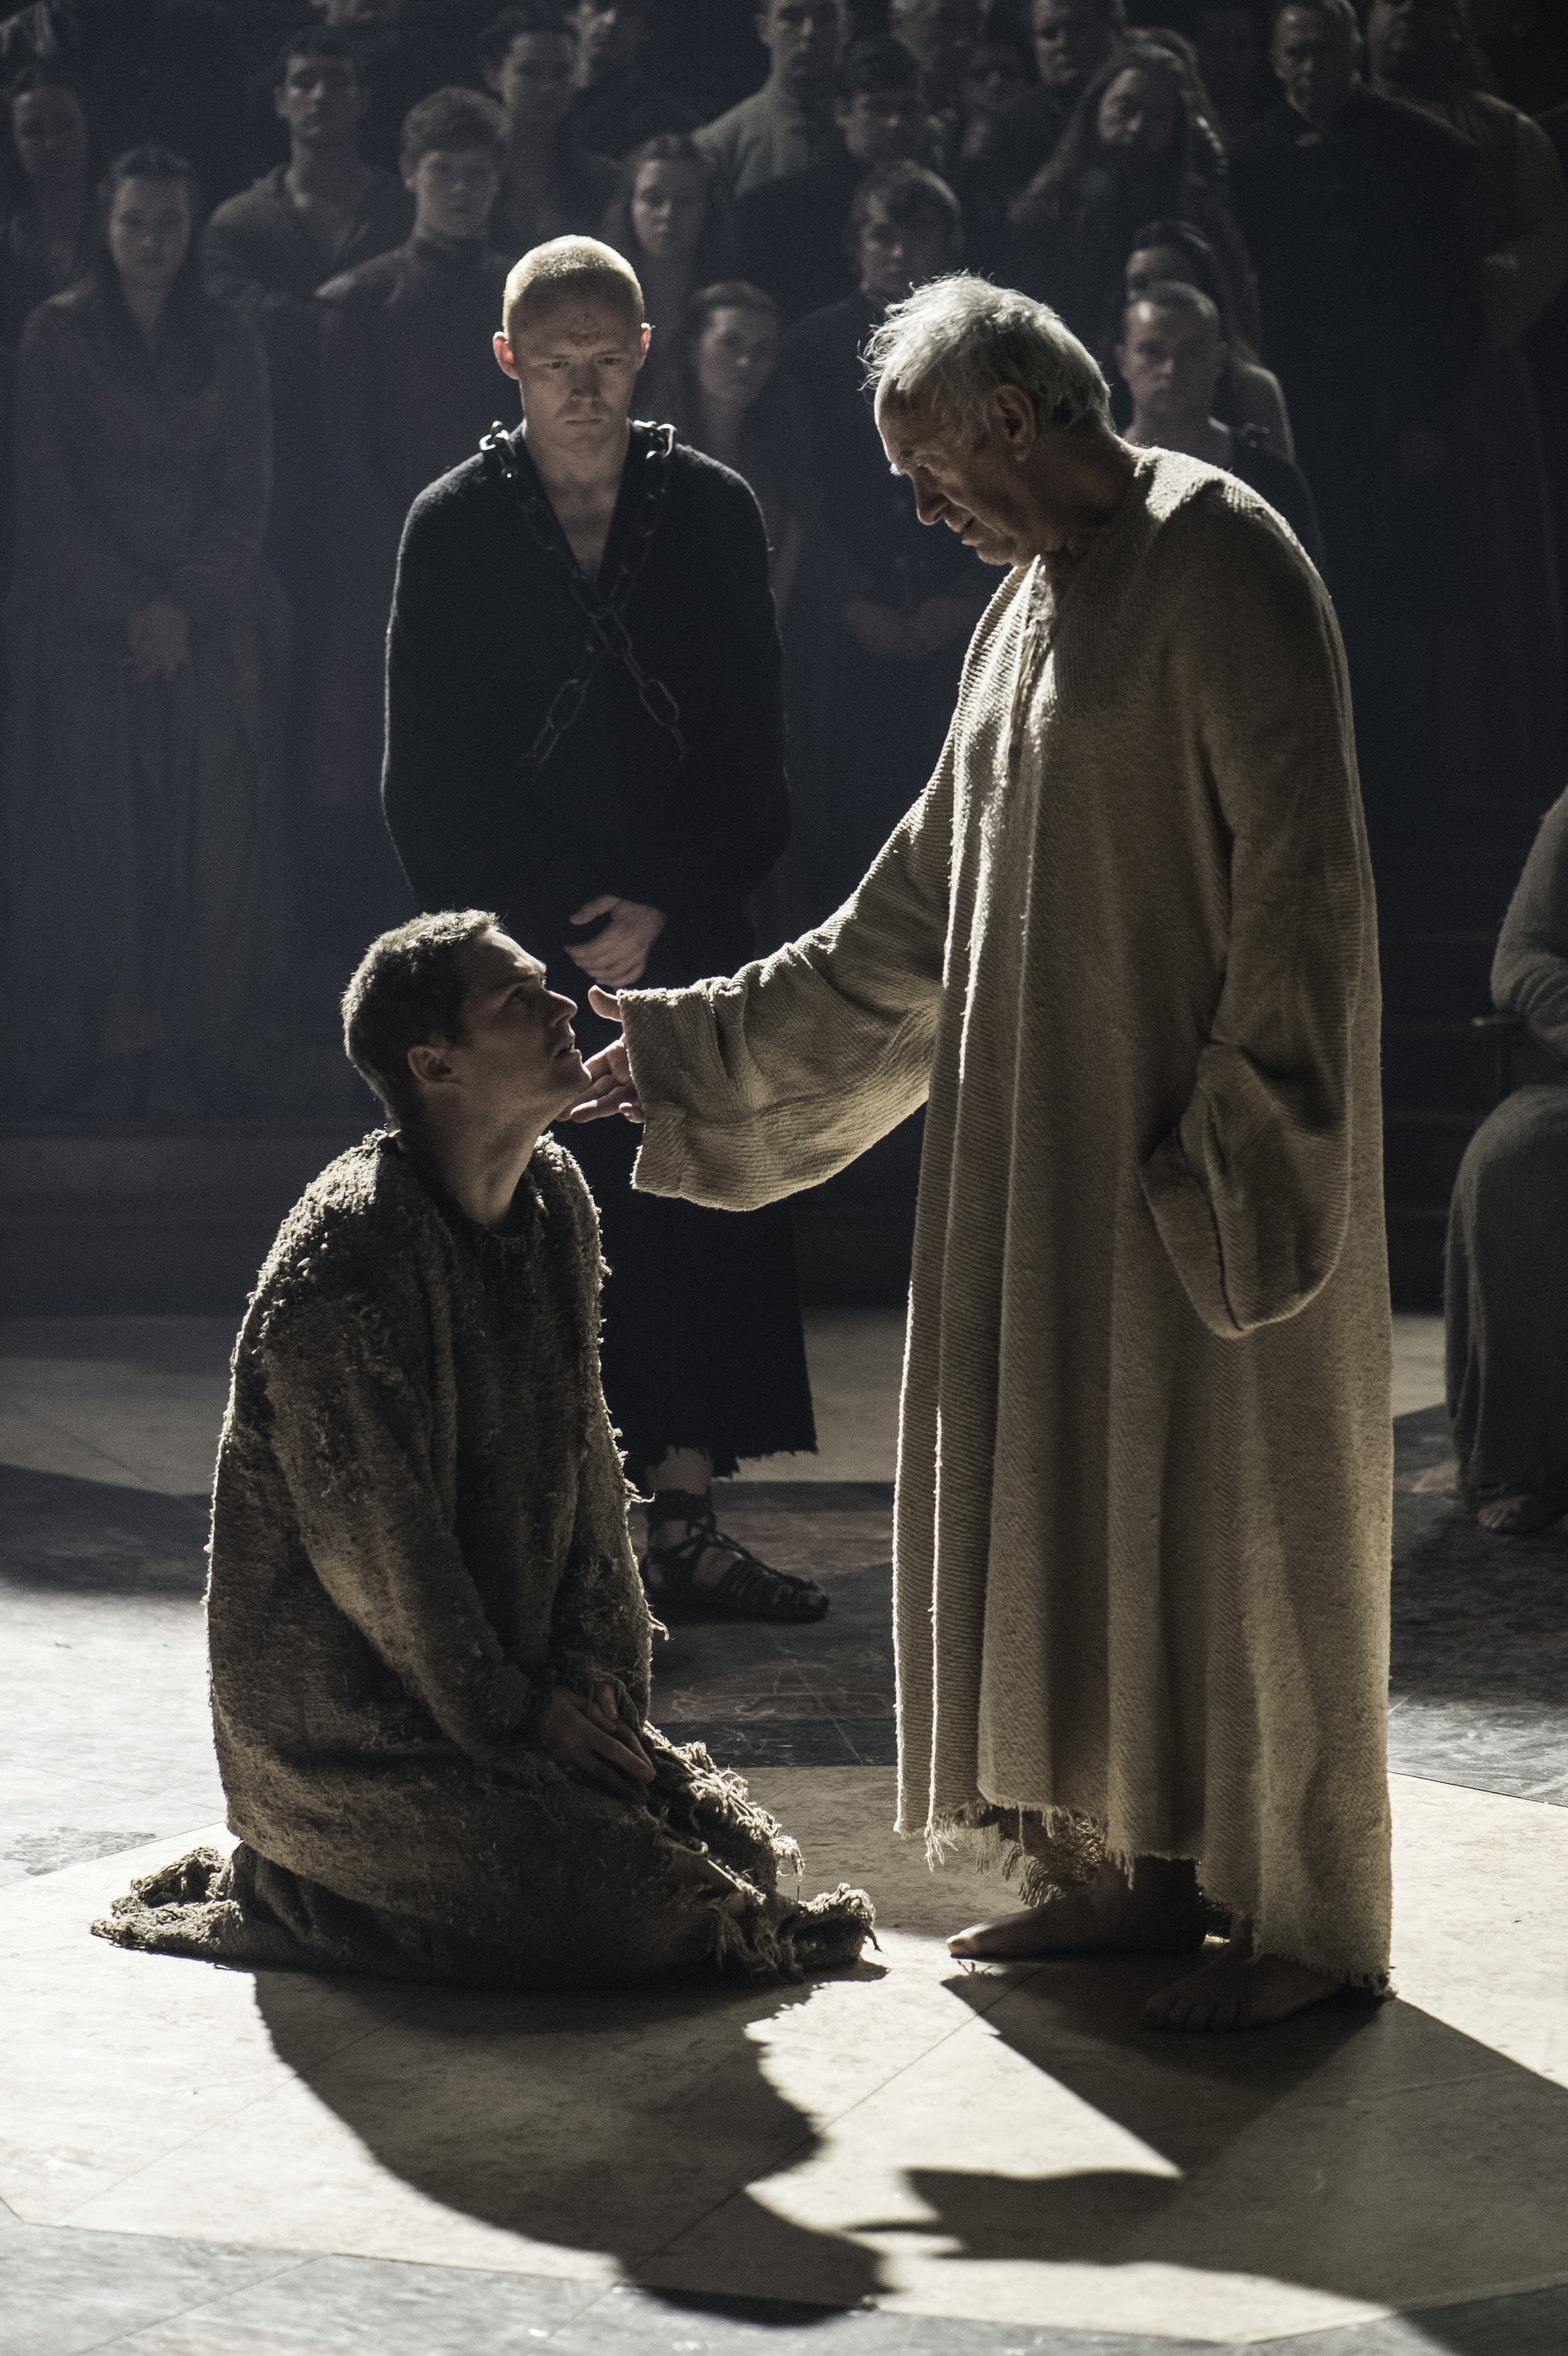 Finn Jones as Loras Tyrell and Jonathan Pryce as the High Sparrow in Game of Thrones